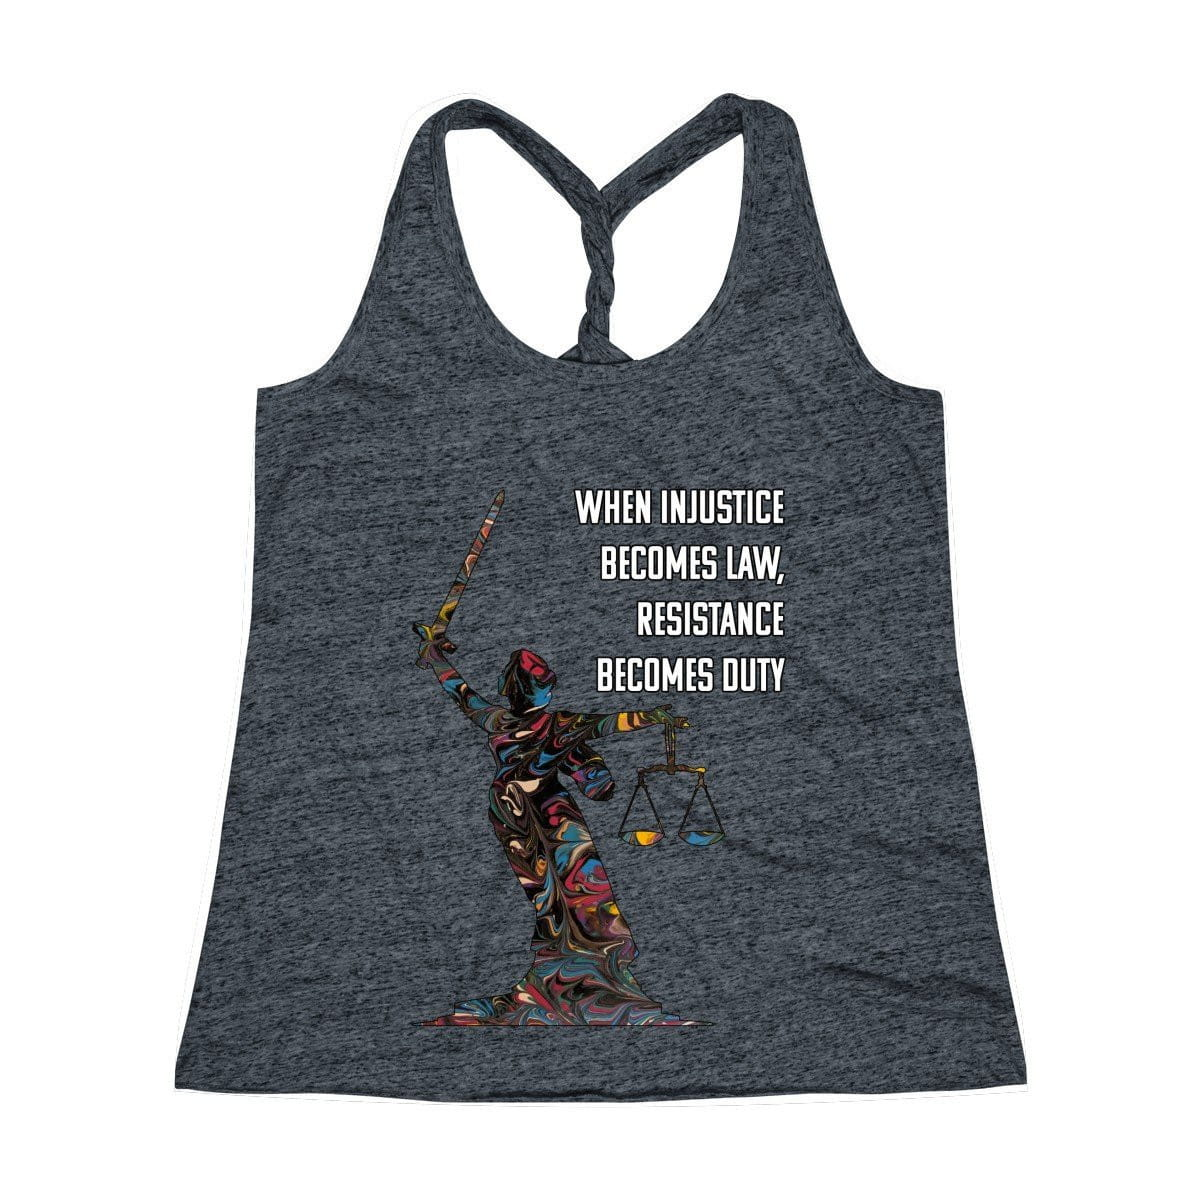 Duty - Women's Cosmic Twist Back Tank Top - Fiercely Fem